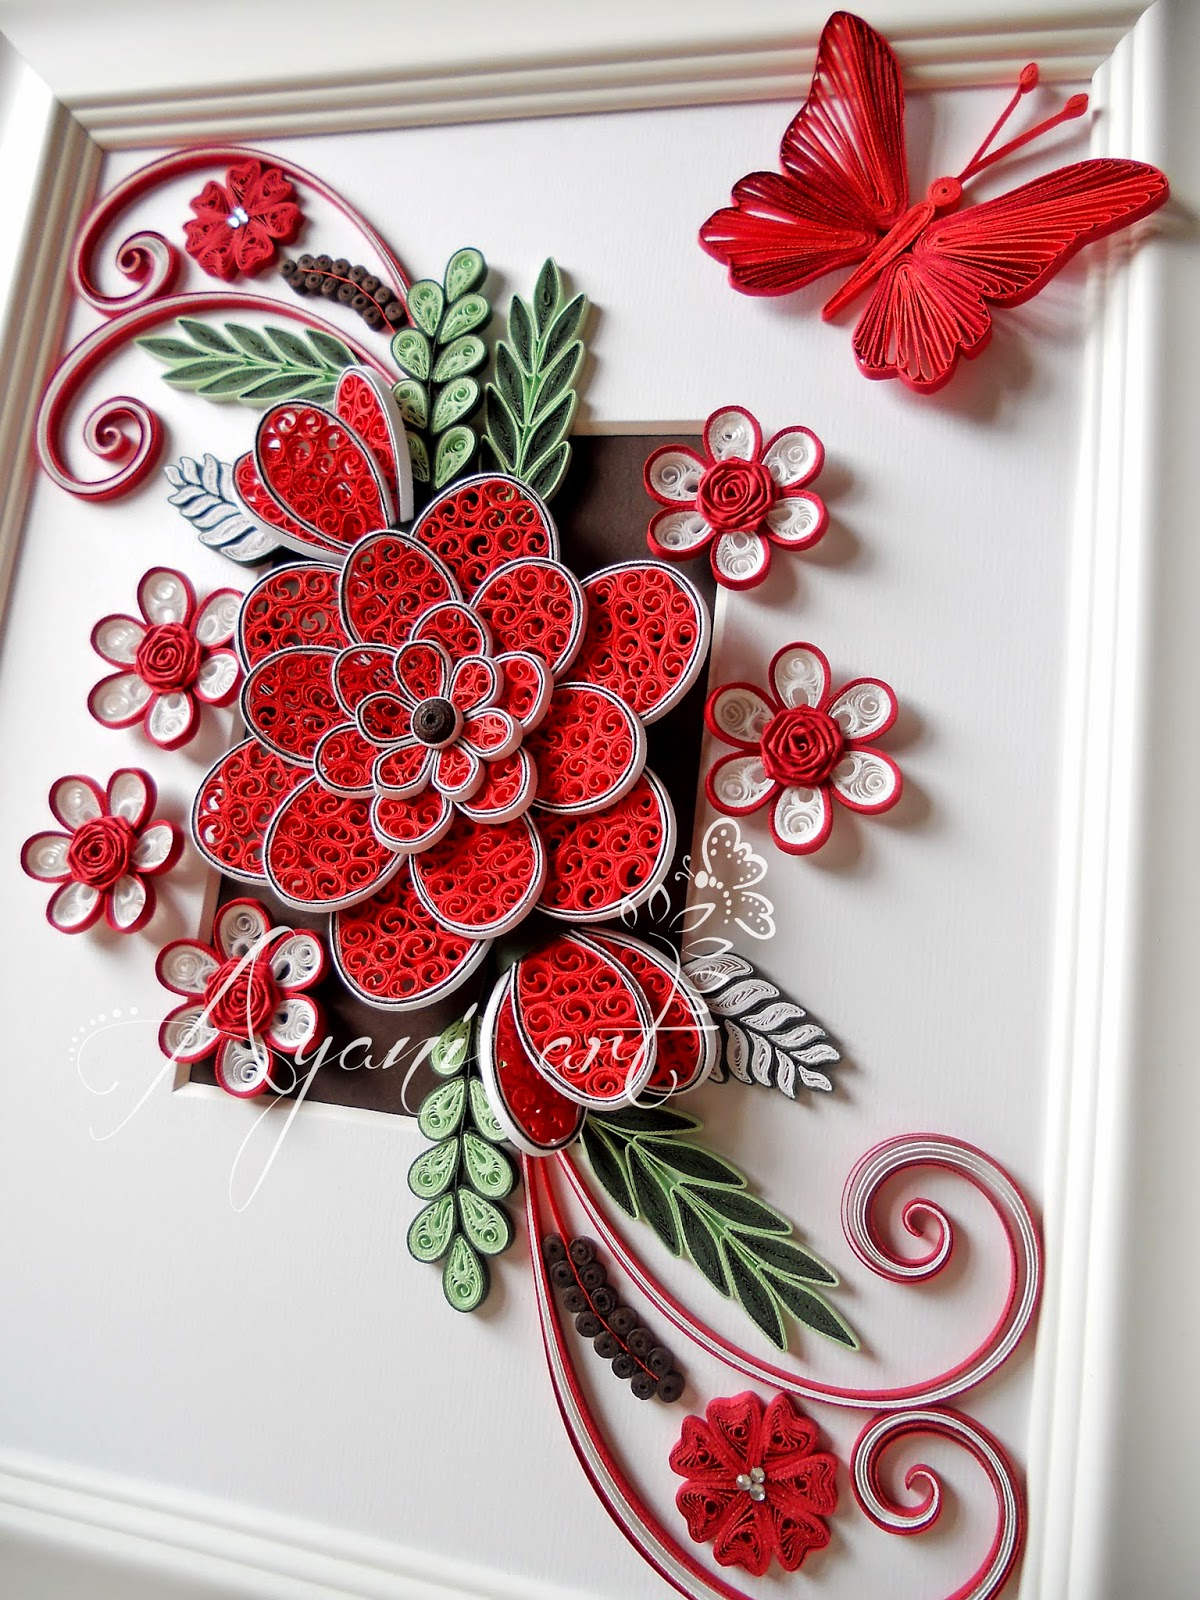 Ayani art: Quilling in Red and White